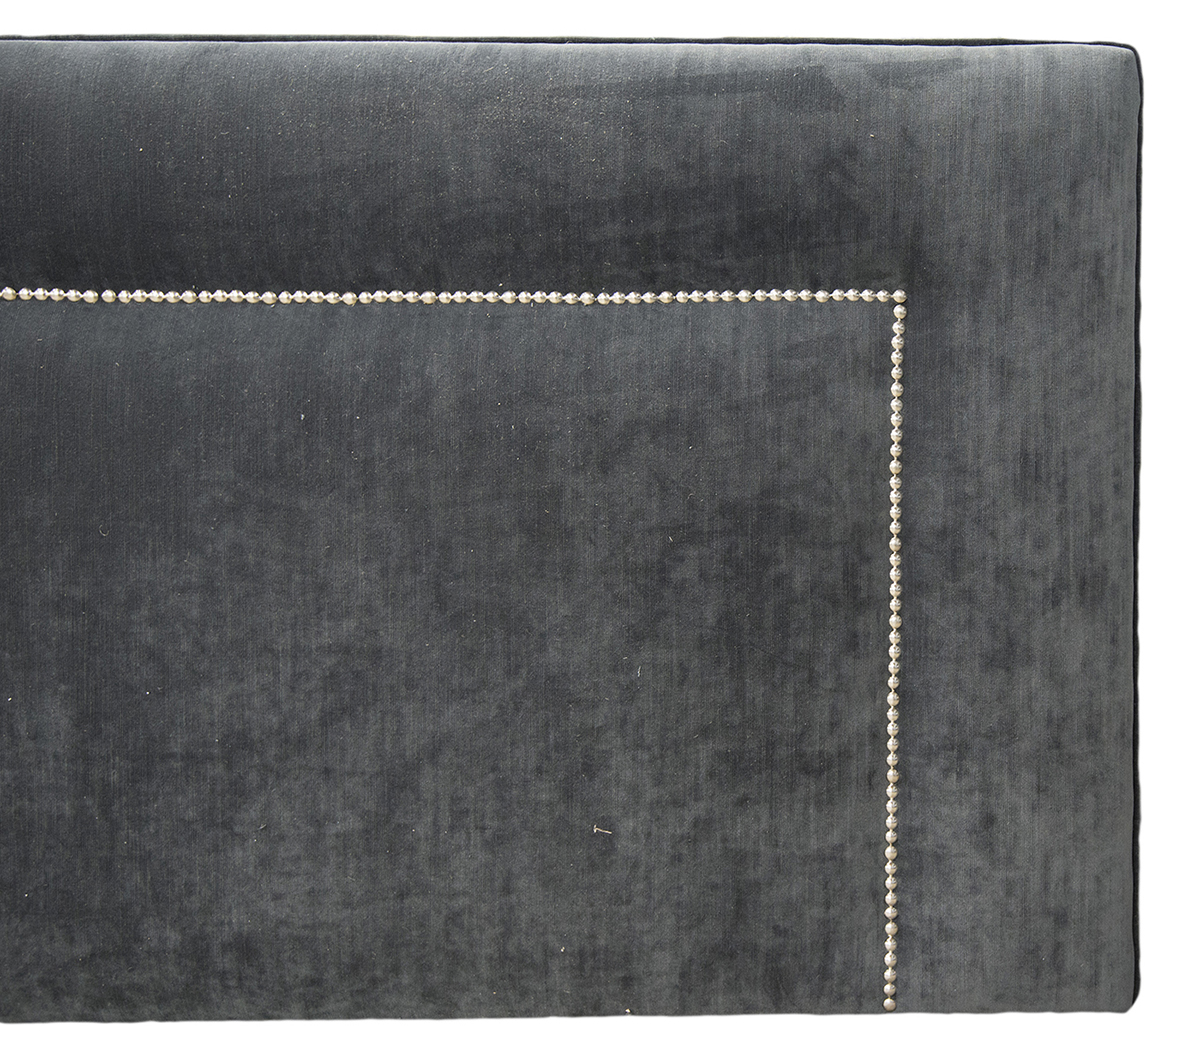 Bespoke Coolmore Headboard Close Up Madison 14293 Anthracite (65cm High)